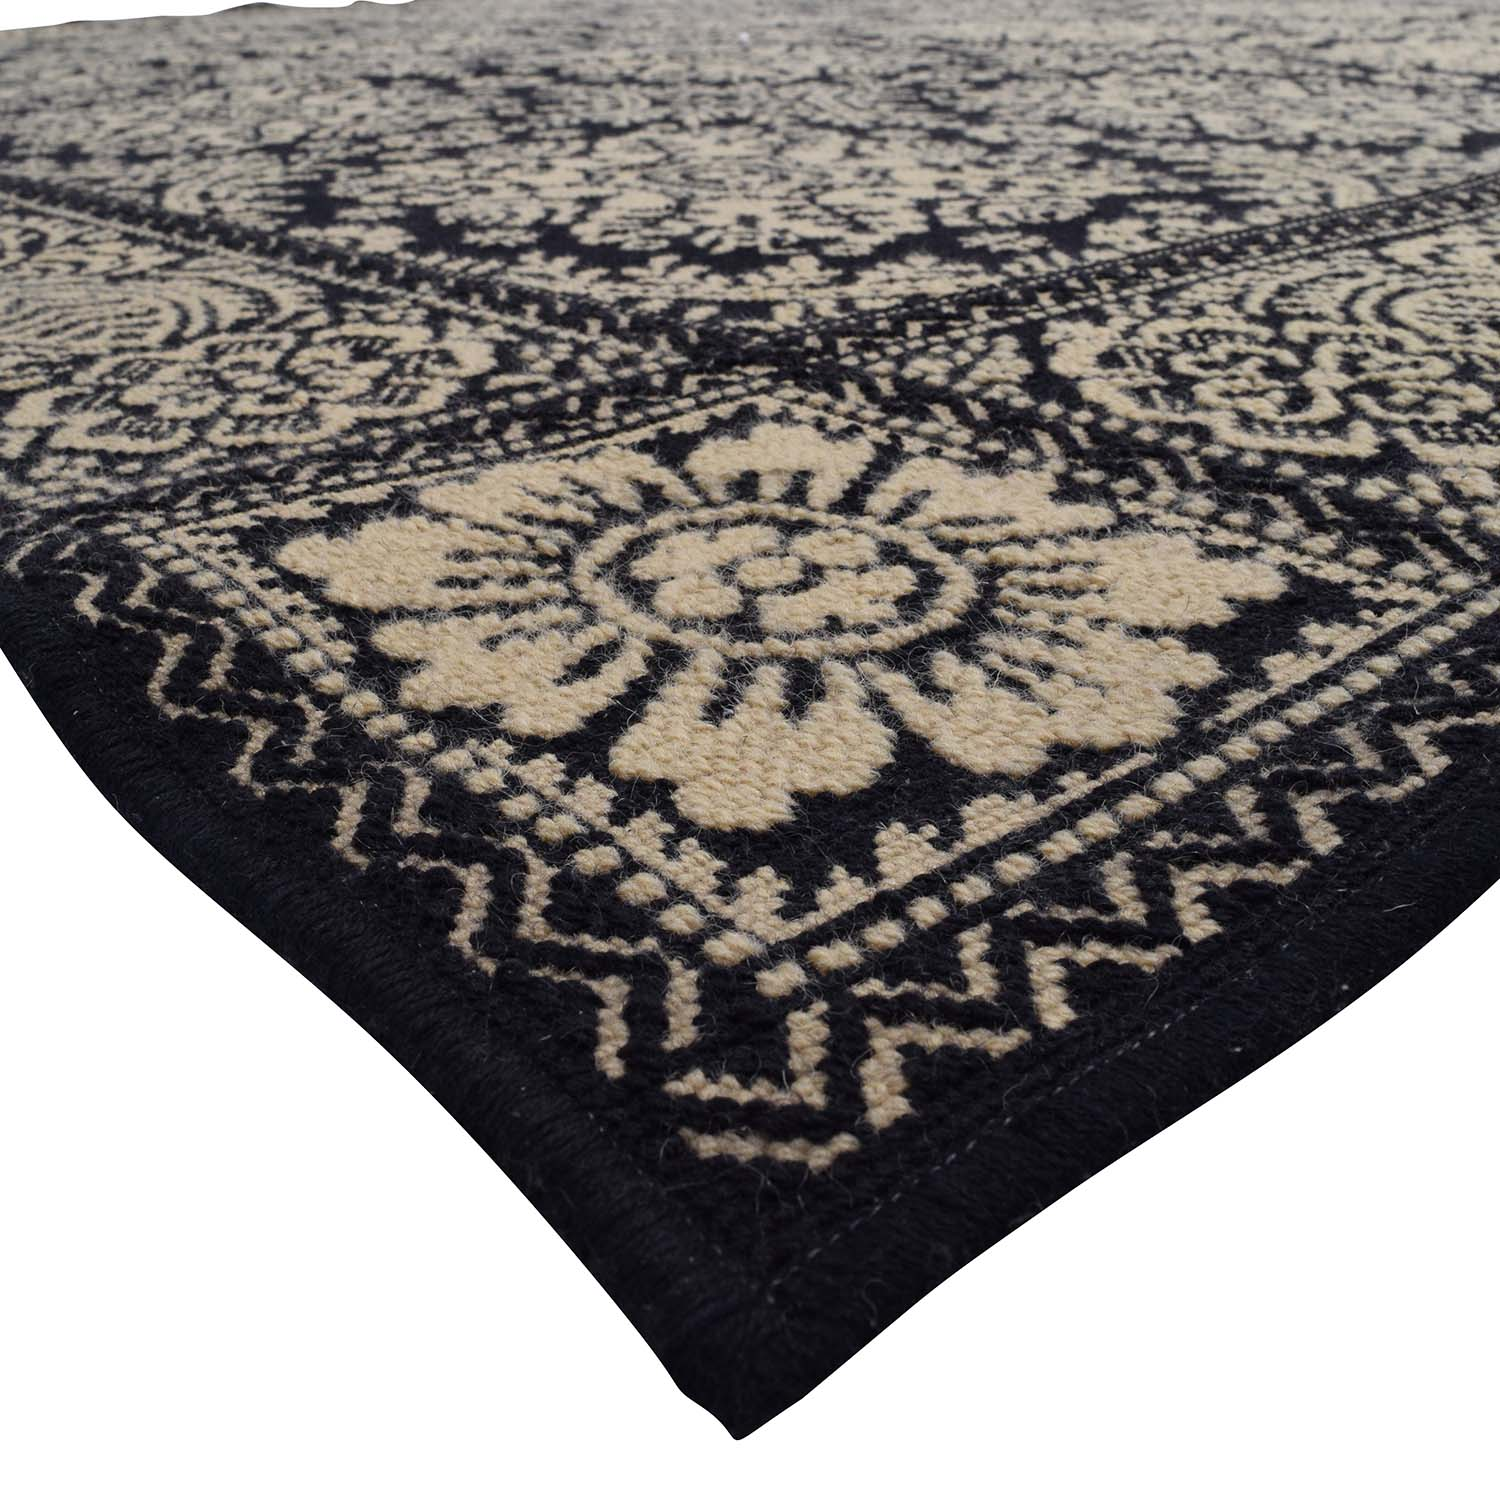 Black and Cream Print Custom Wool Rug used